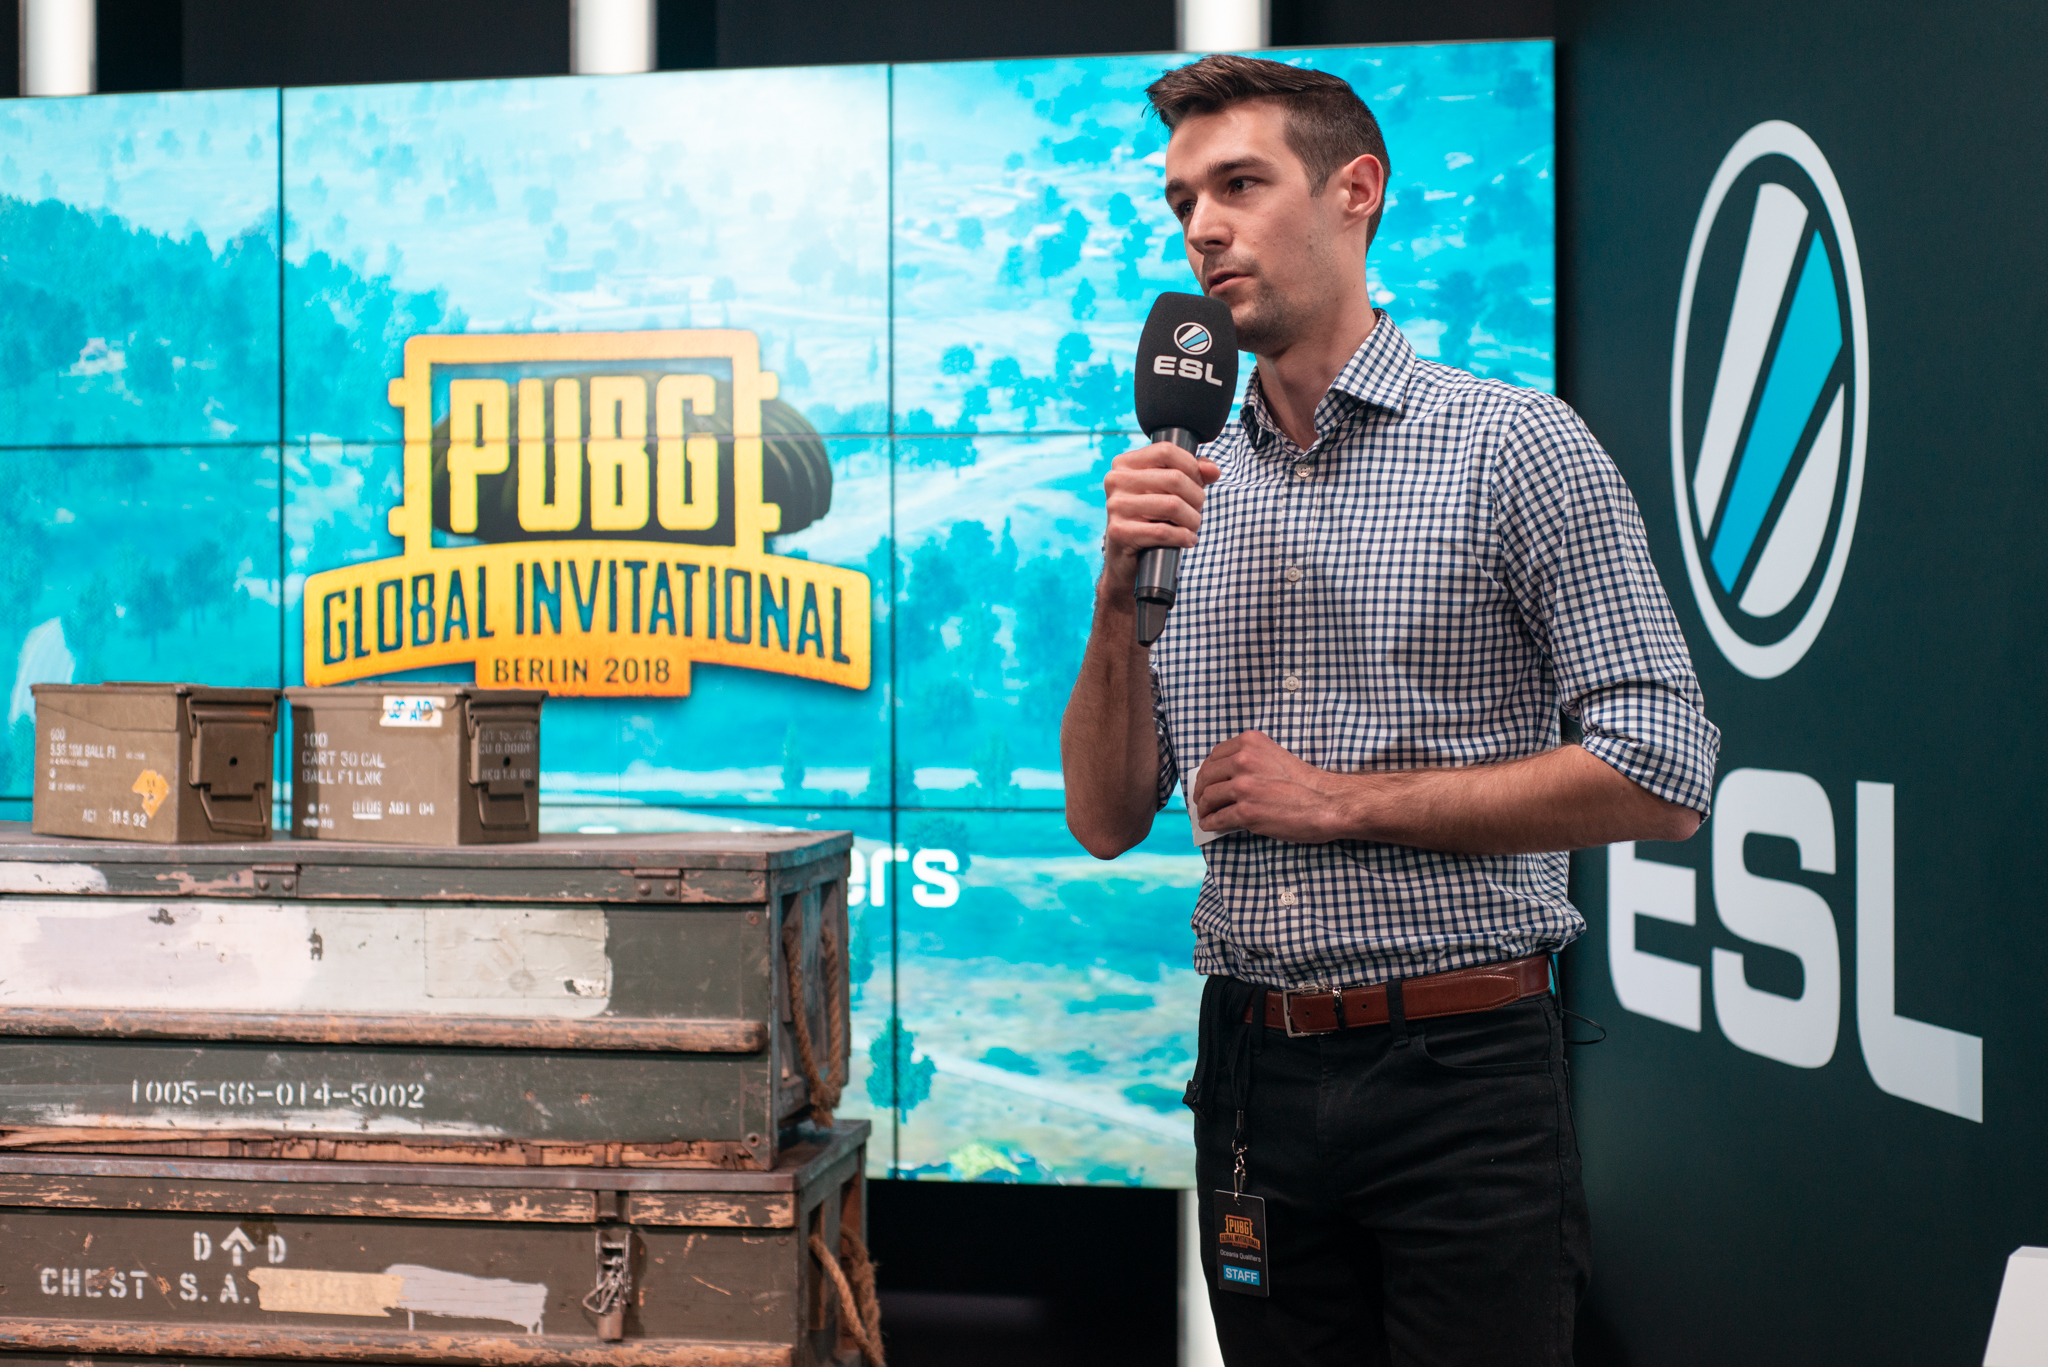 PUBG Global Invitational Oceania Qualifier